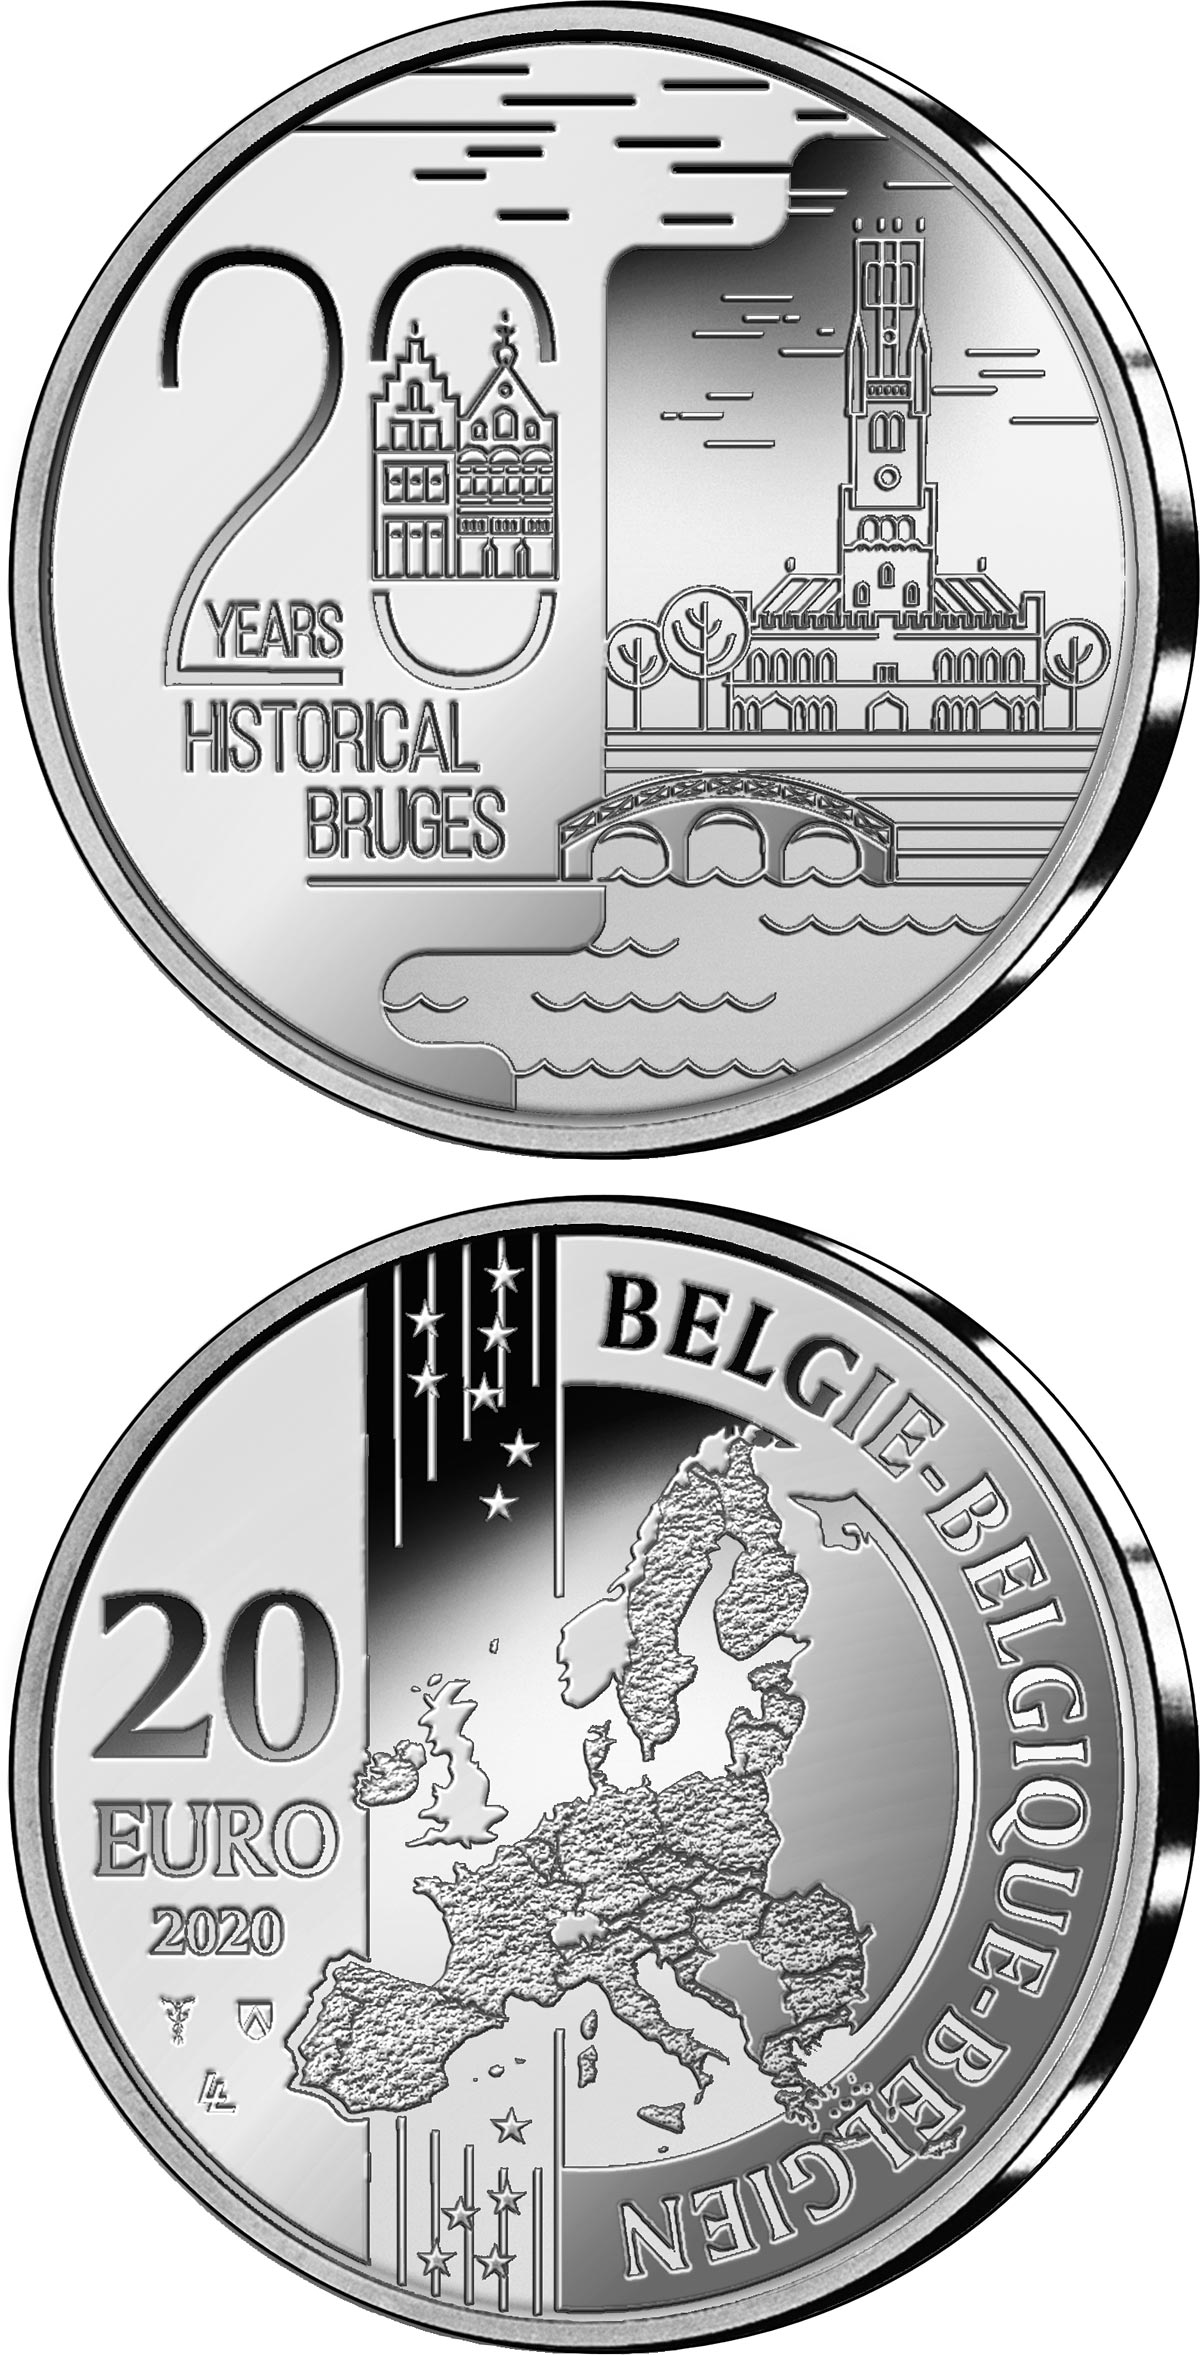 Image of 20 euro coin - 20 Years Historical Bruges | Belgium 2020.  The Silver coin is of Proof quality.